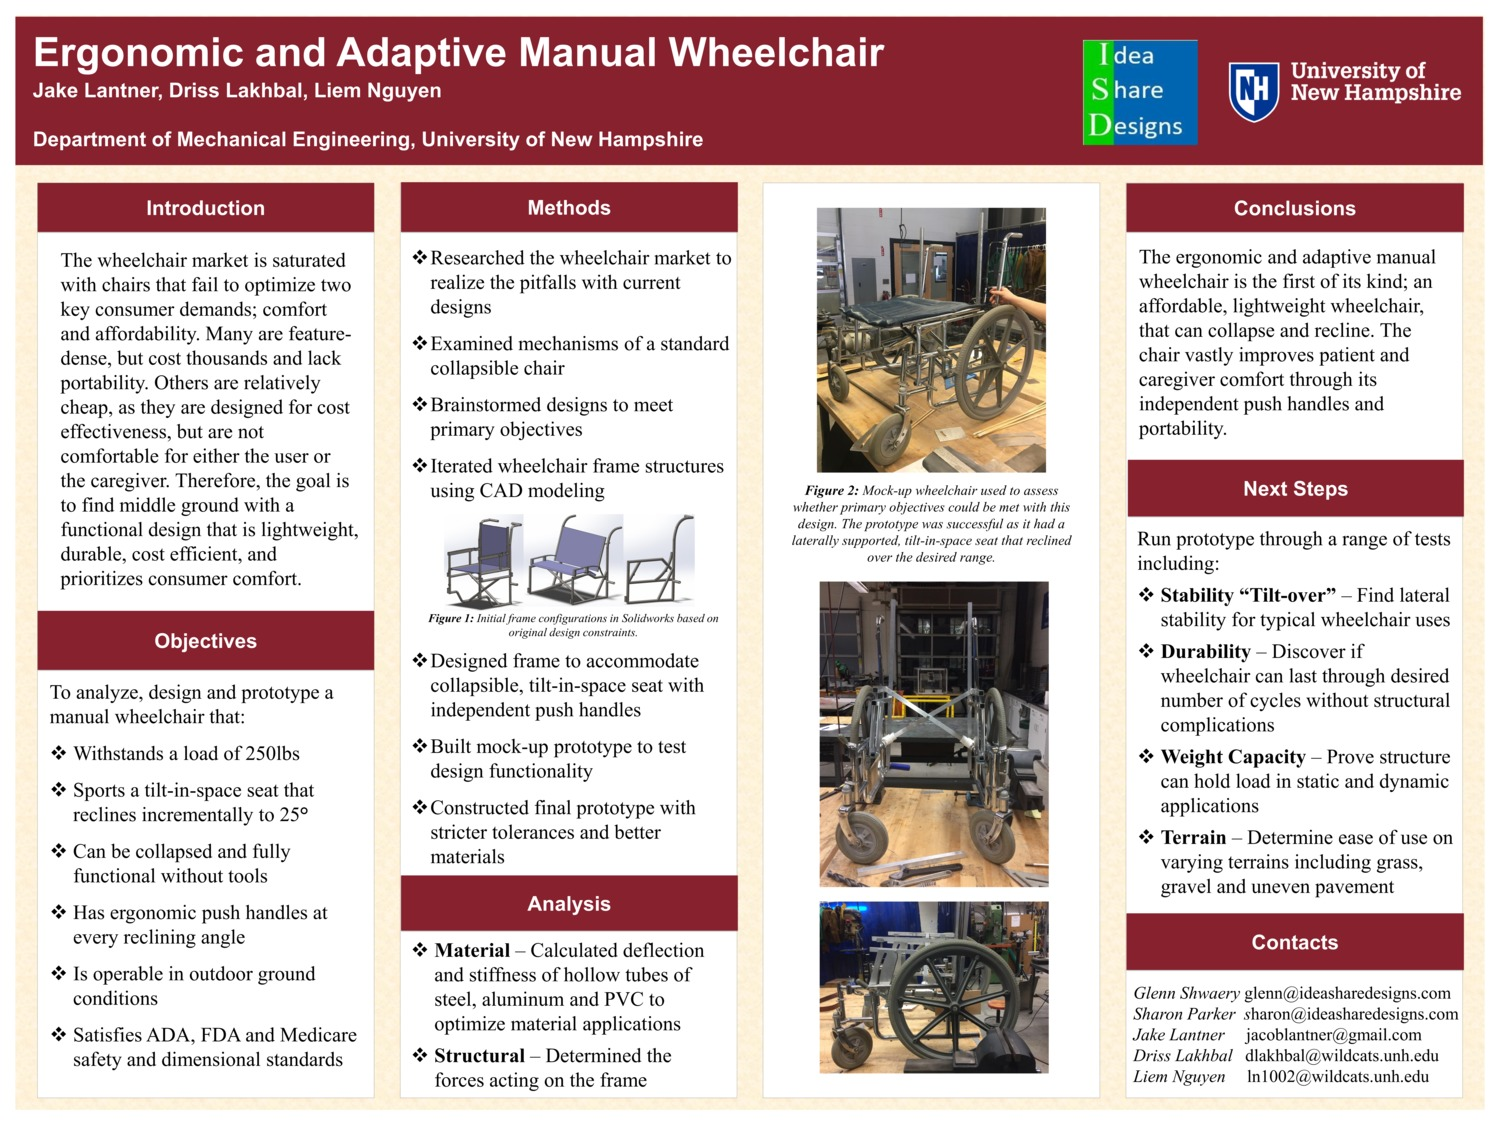 Ergonomic And Adaptive Manual Wheelchair by jel1004